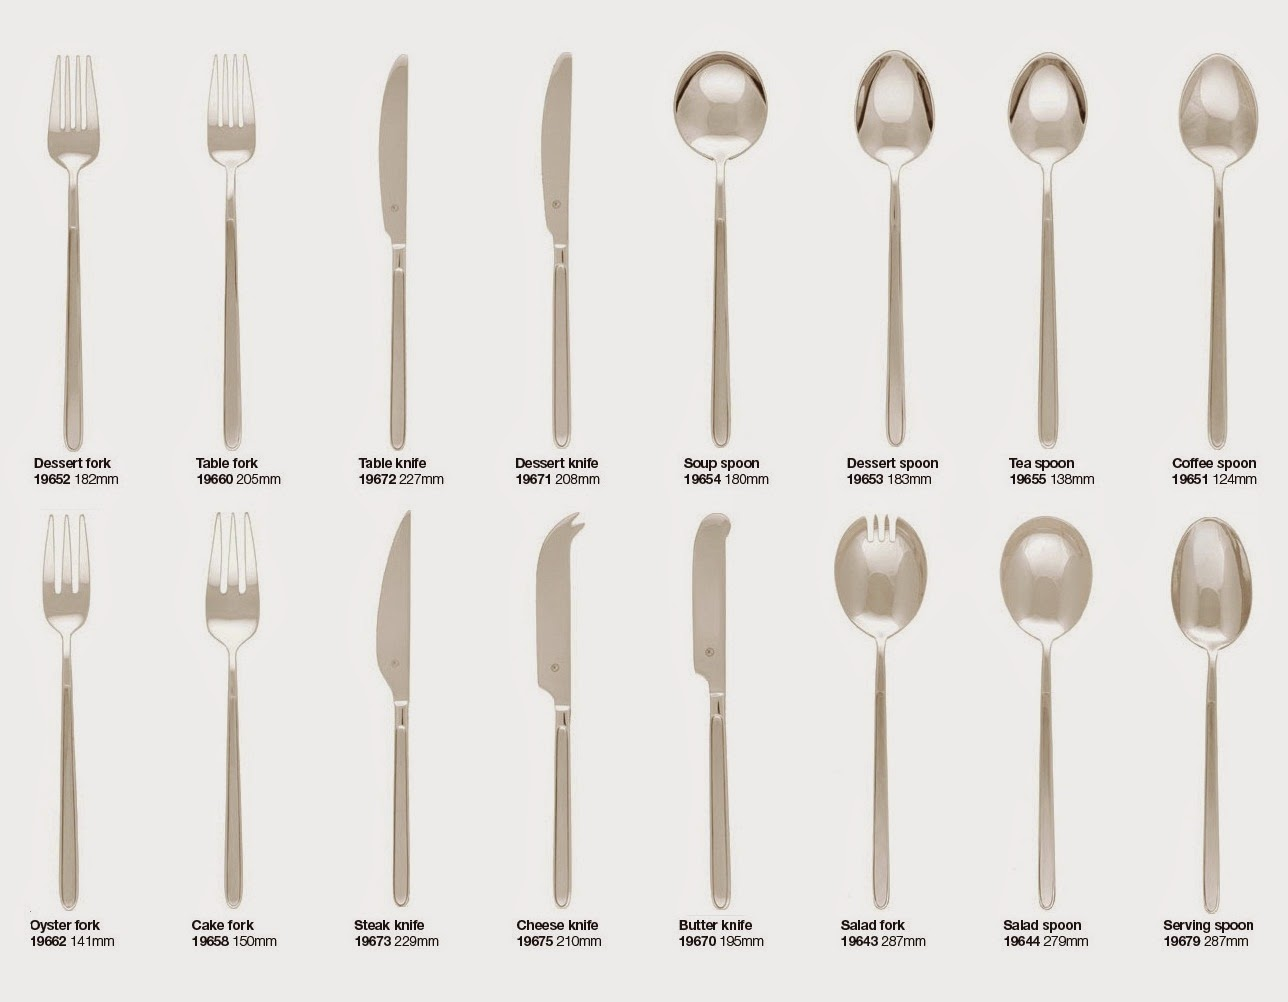 Tips on fine dining etiquette for Table utensils